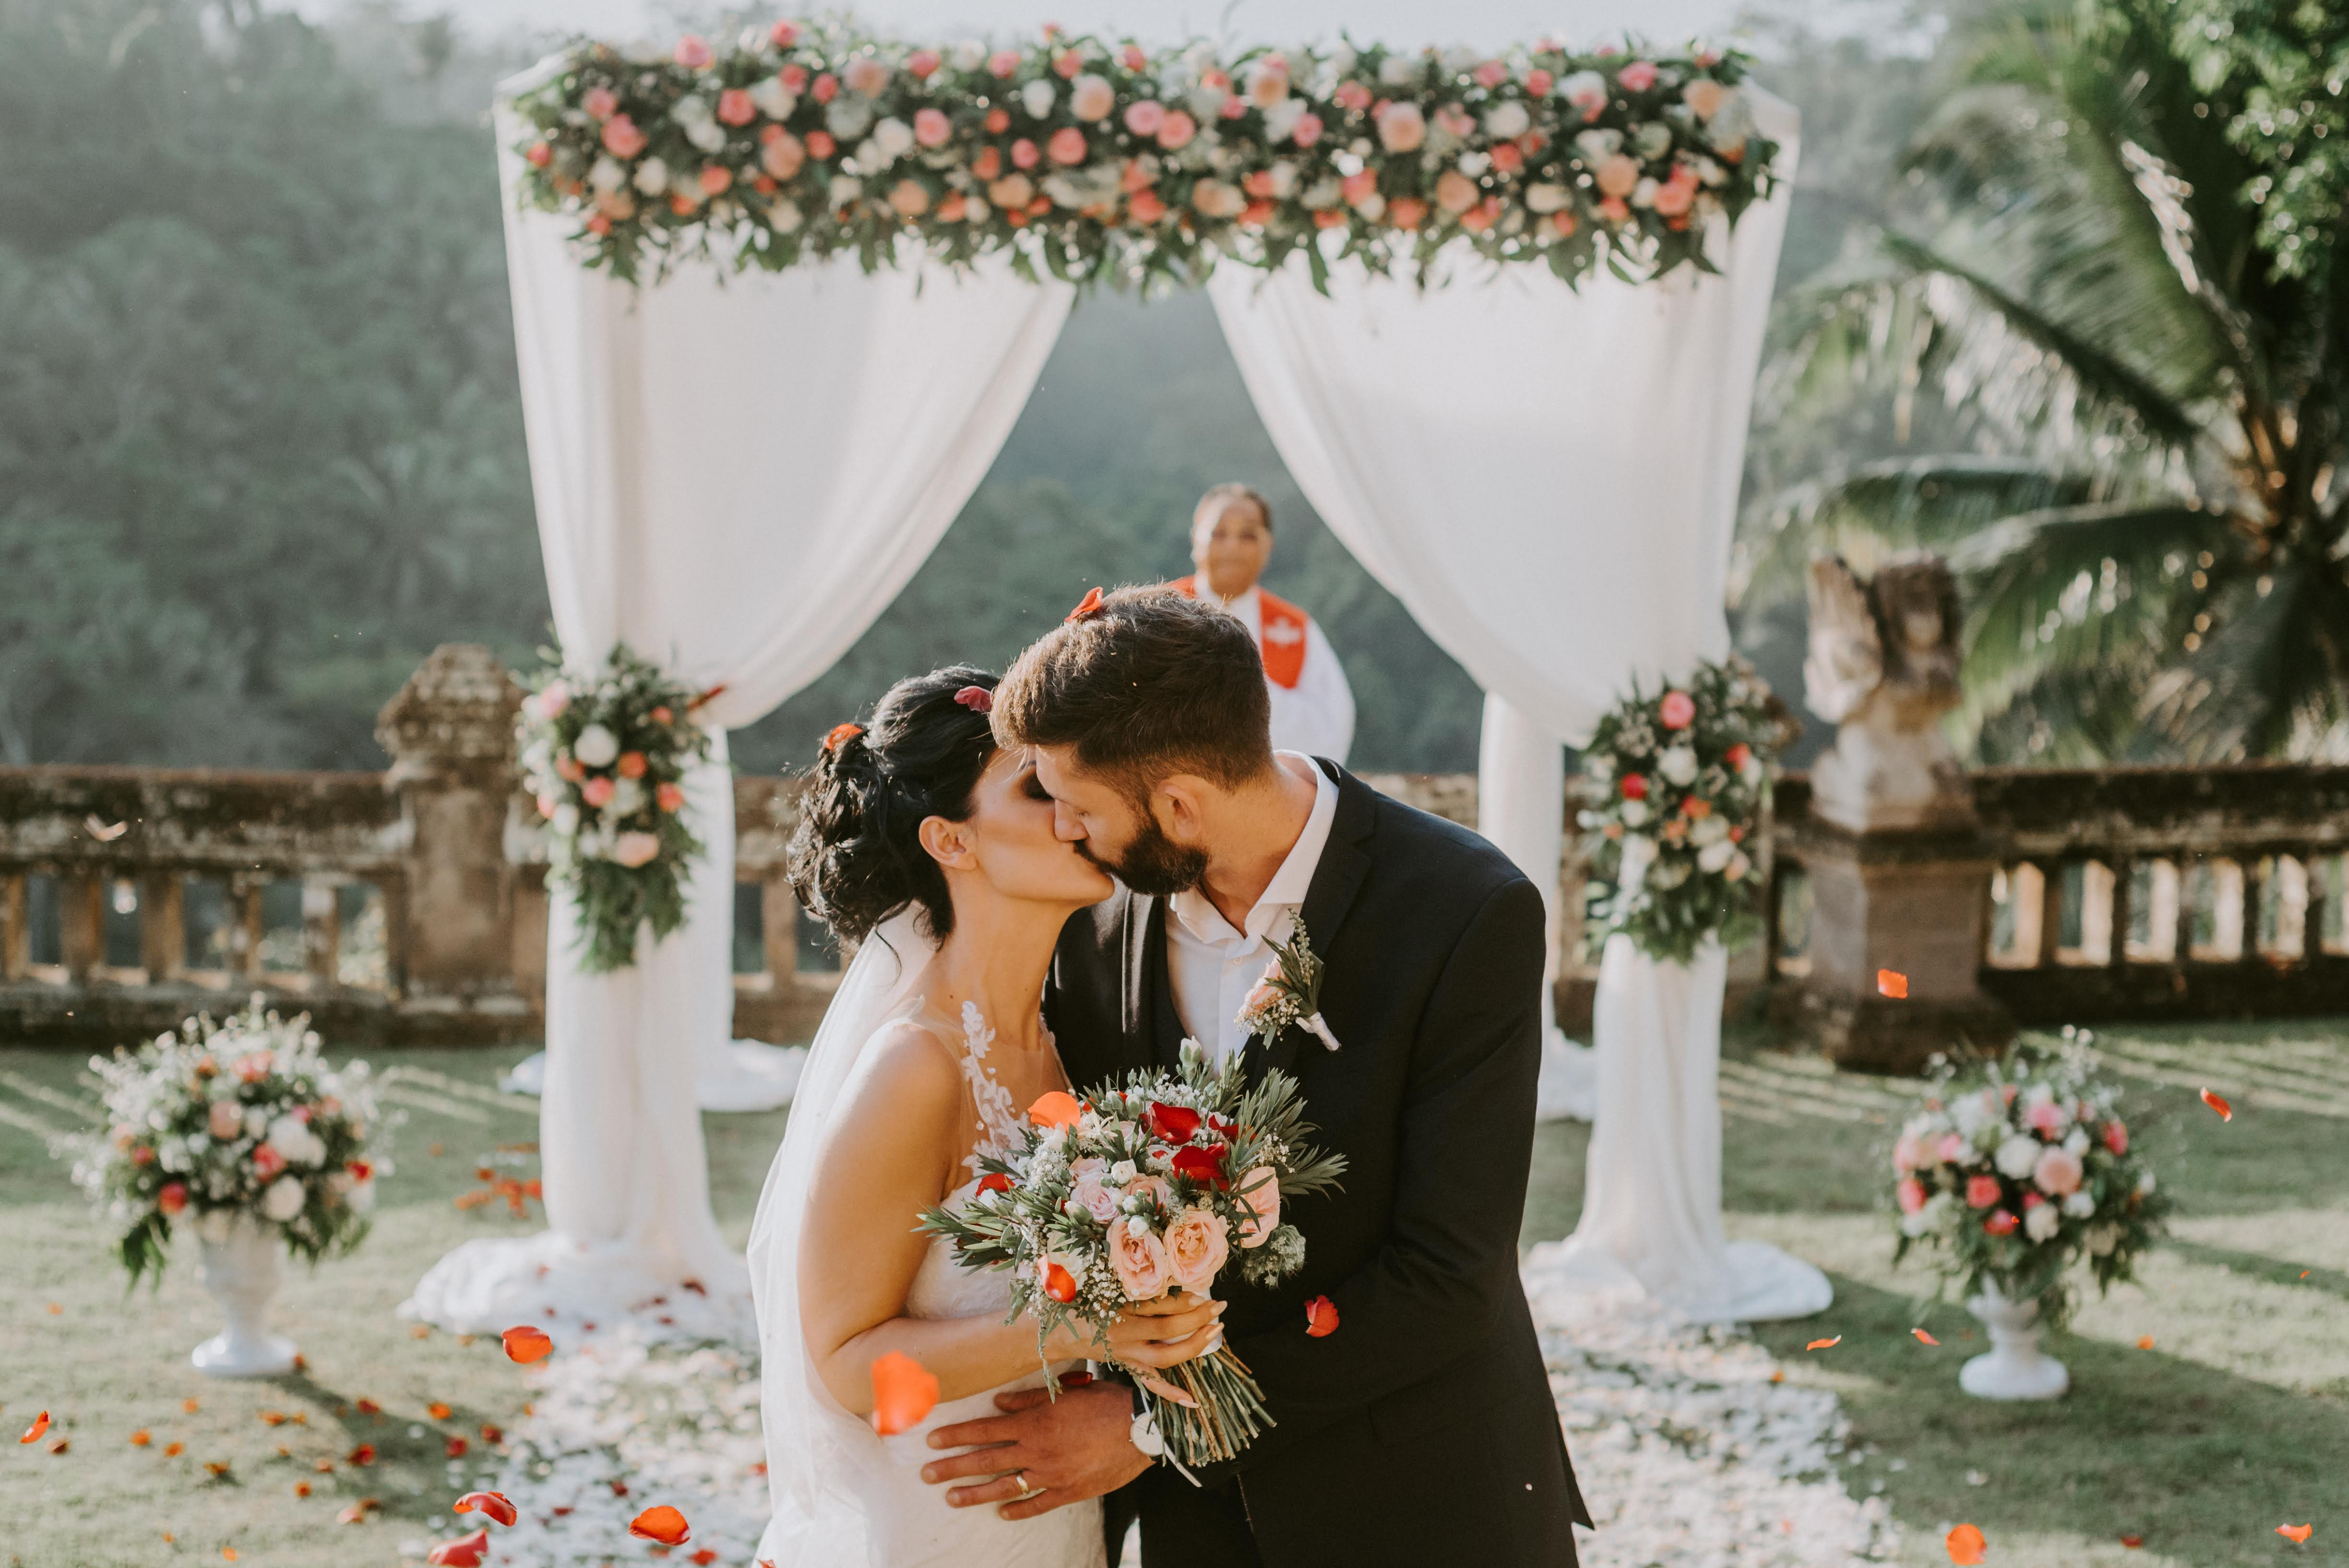 Eloping in Bali - Ubud temple garden wedding by Bali Moon Wedding (11)